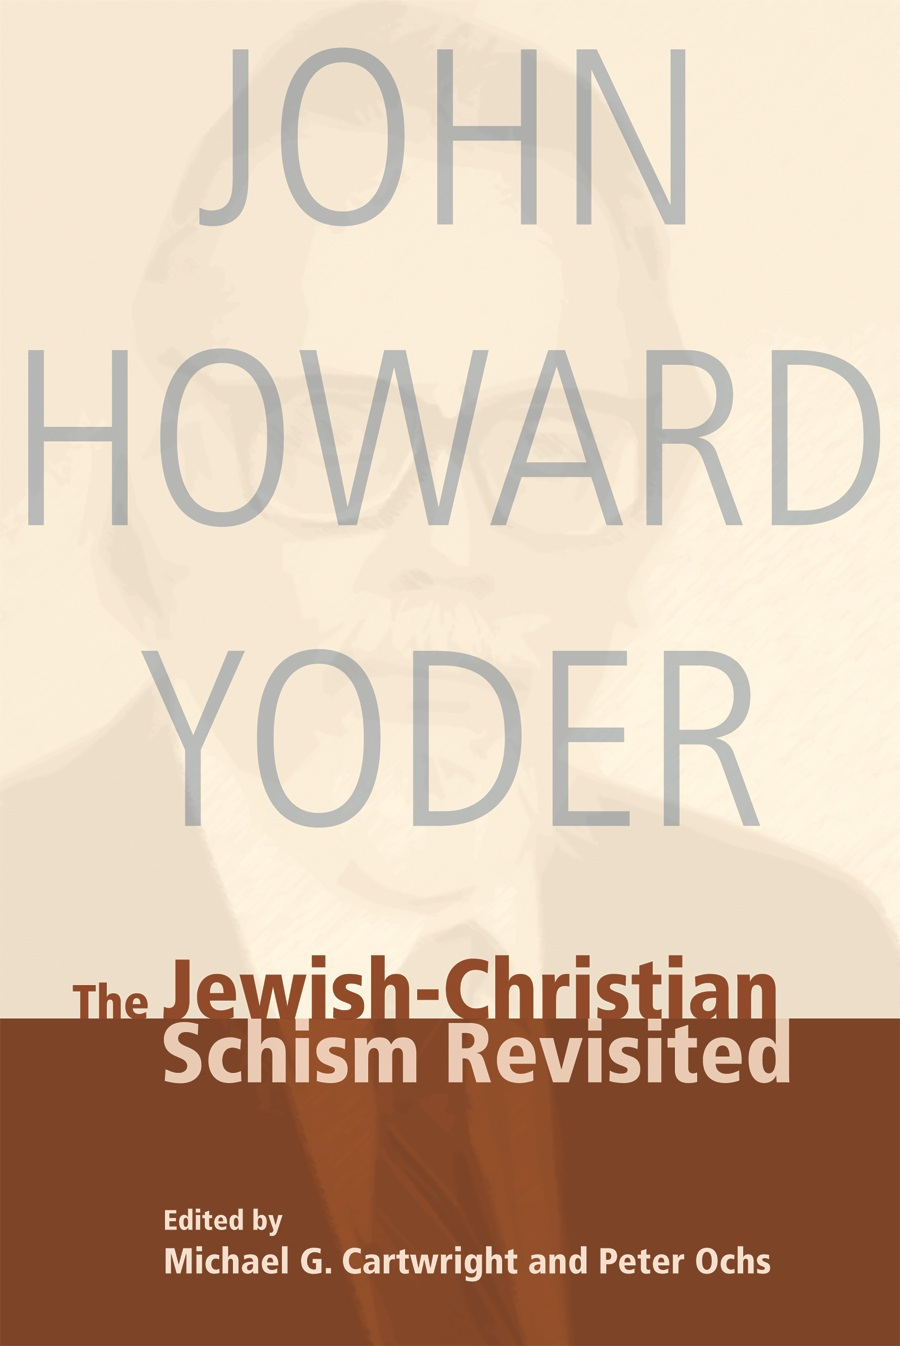 The Jewish-Christian Schism Revisited